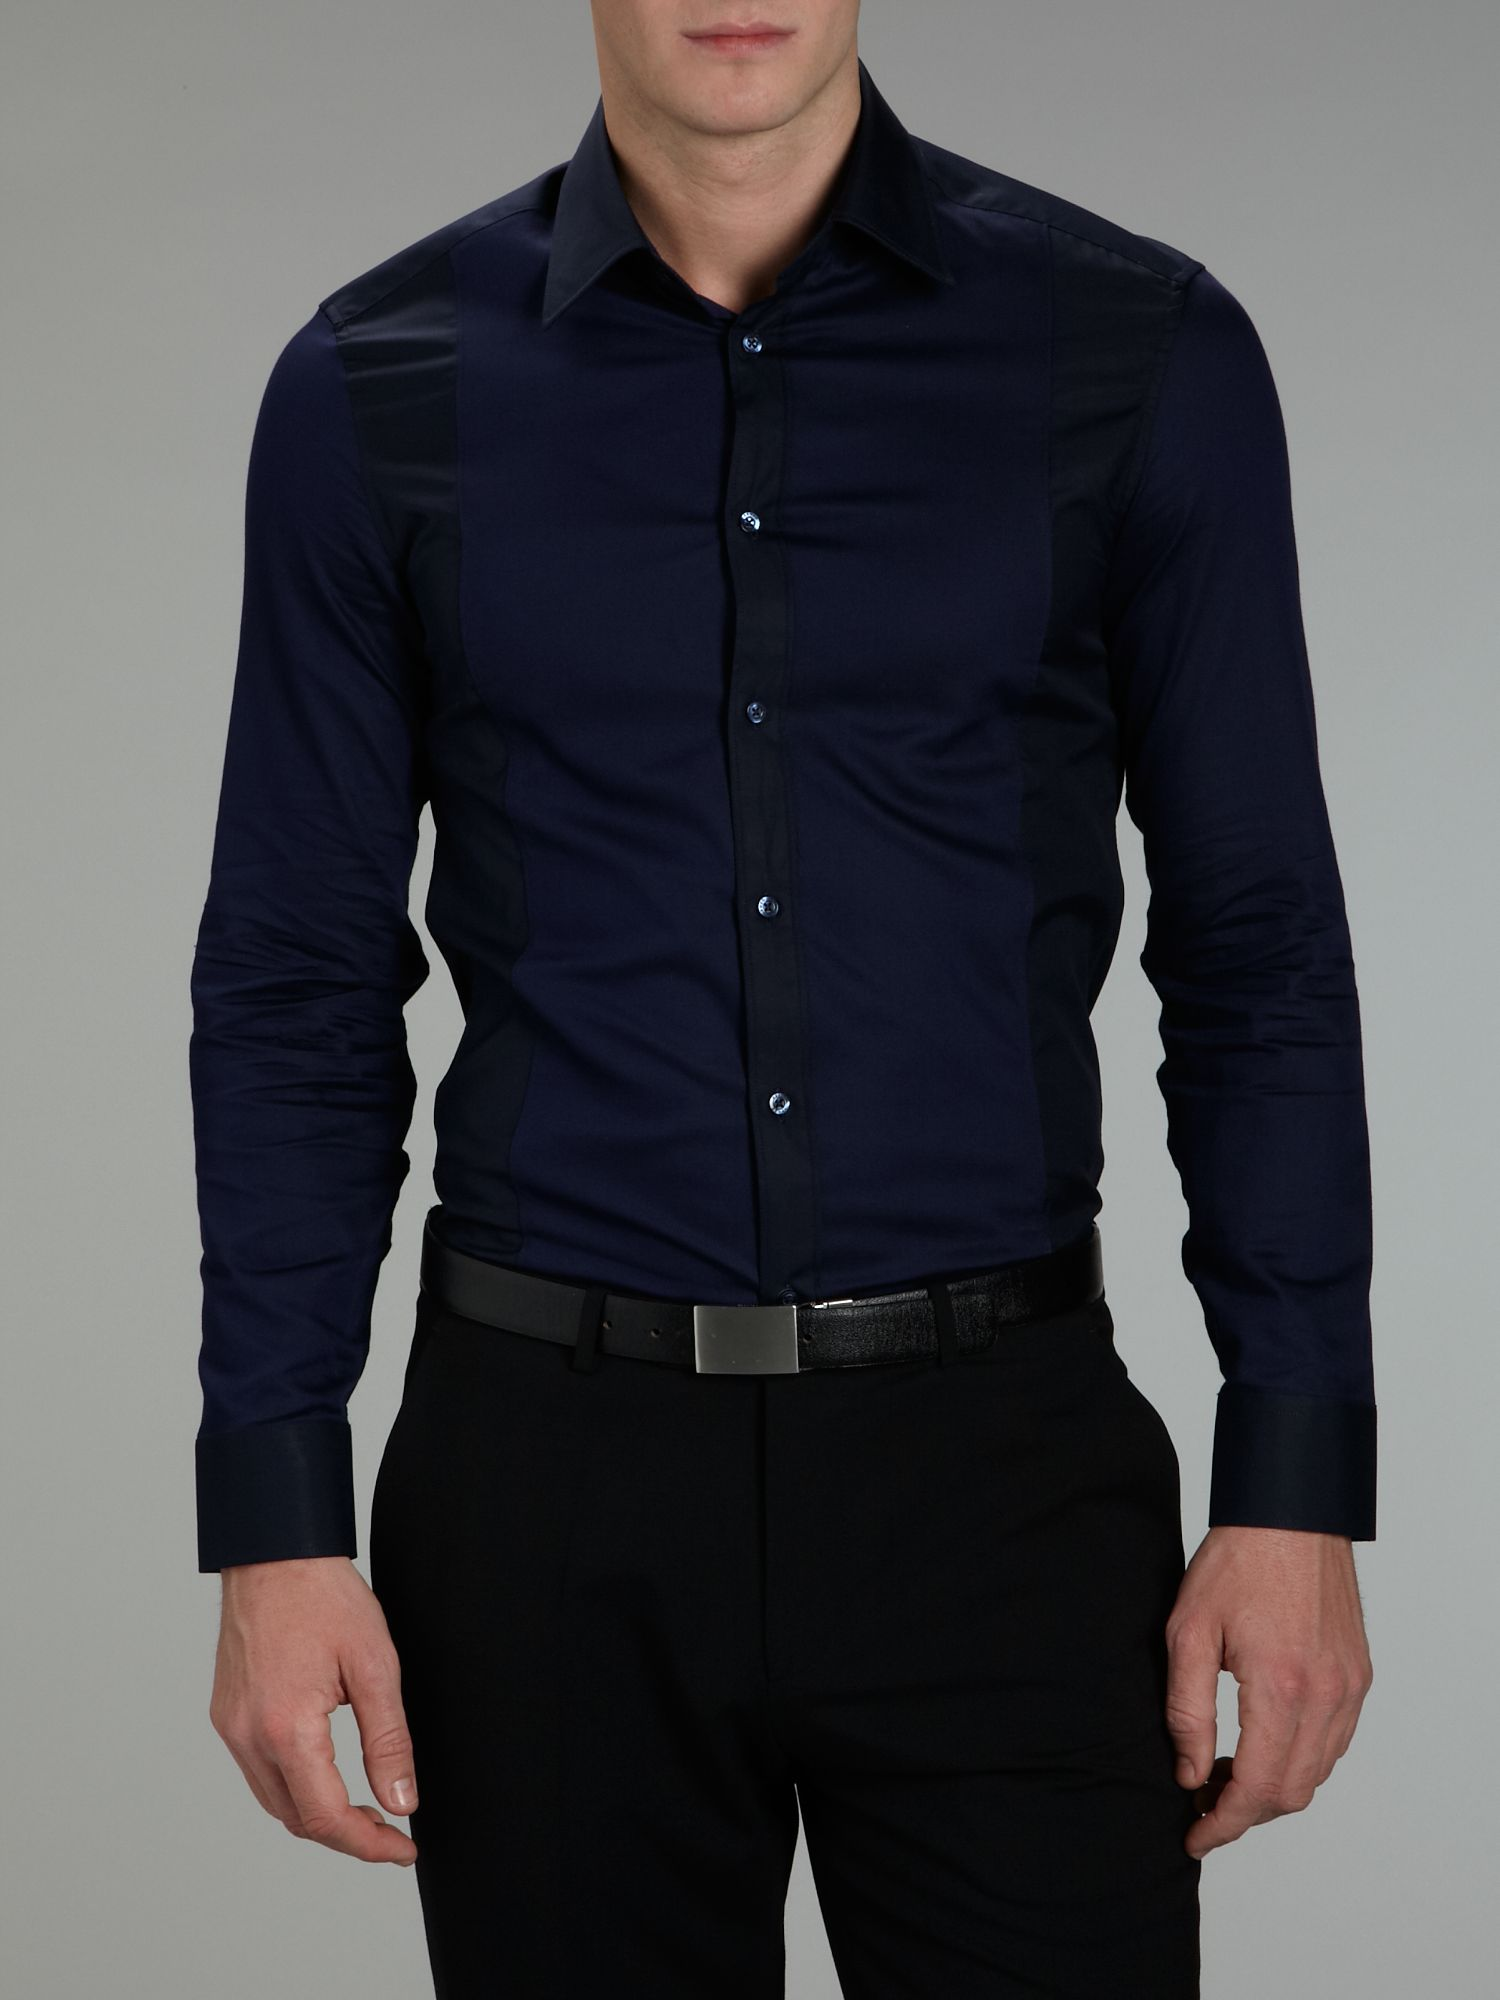 Kenzo Long Sleeve Panel Dress Shirt in Blue for Men  Lyst